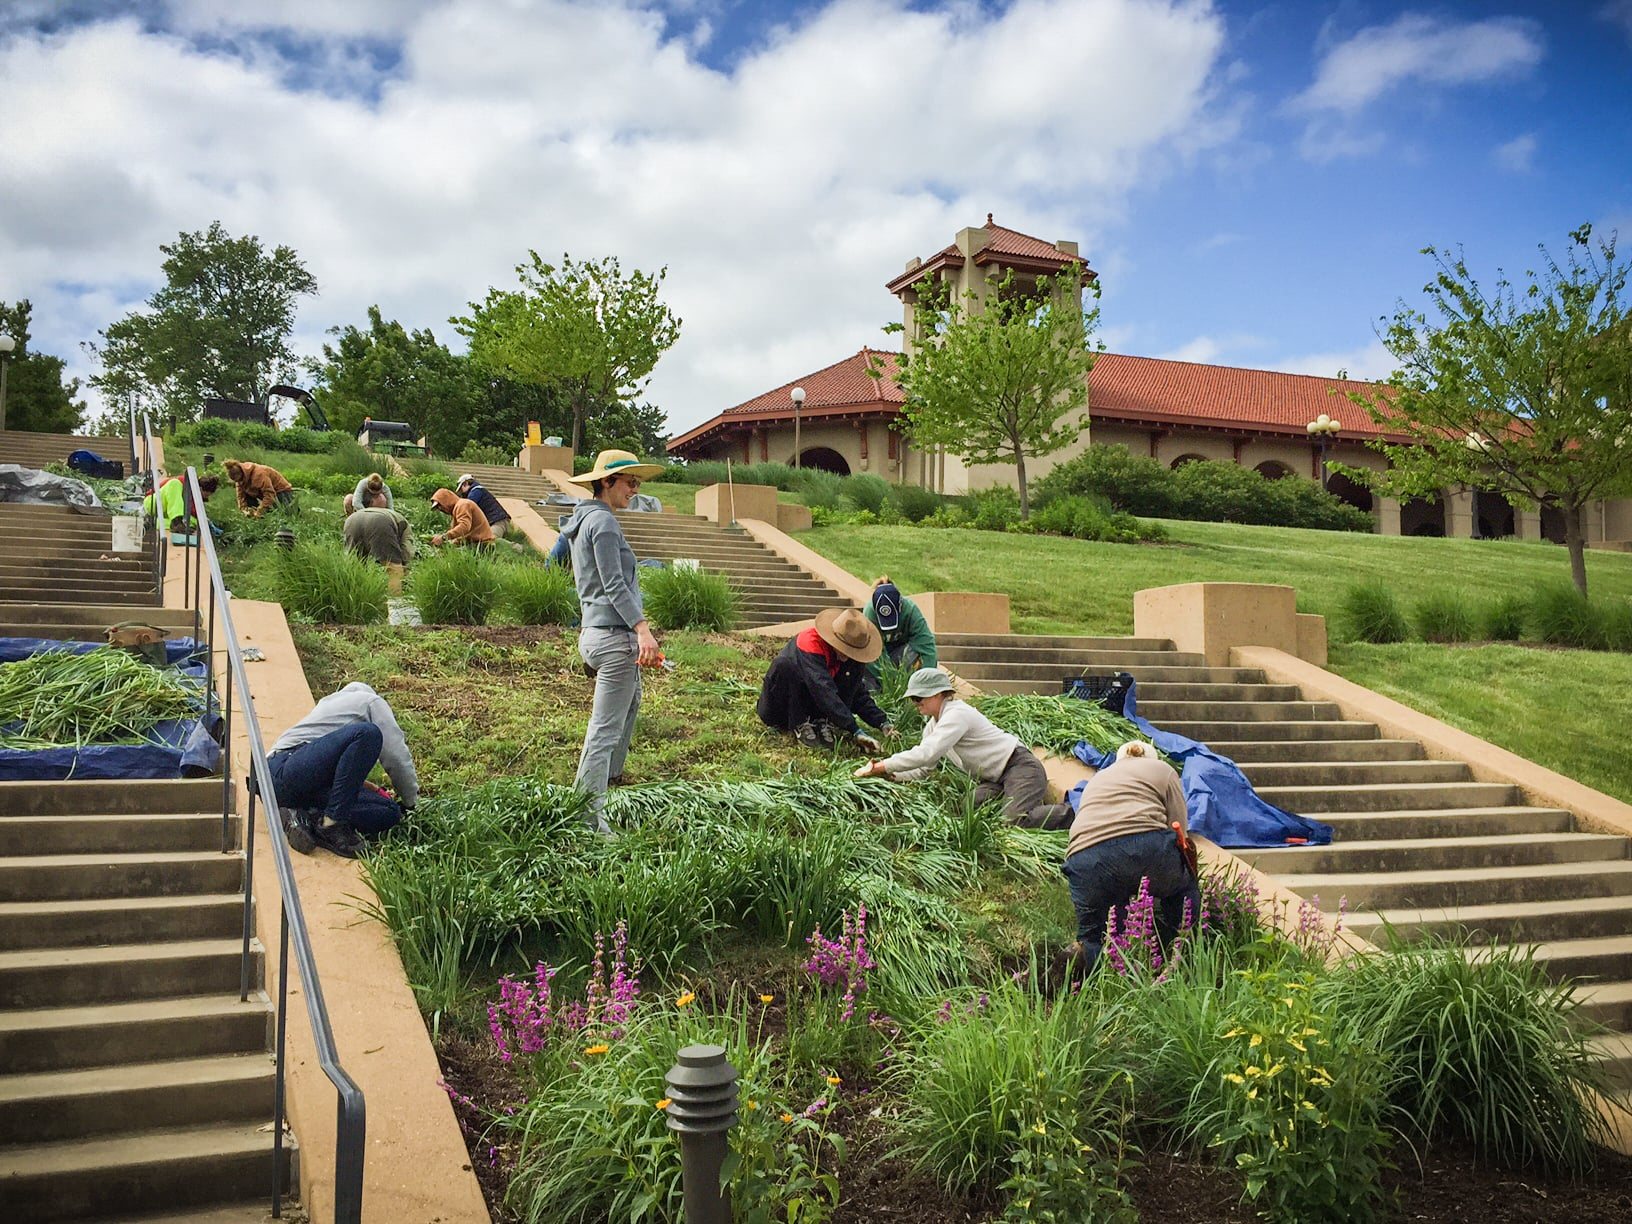 St. Louis Master Gardeners Park Project Day